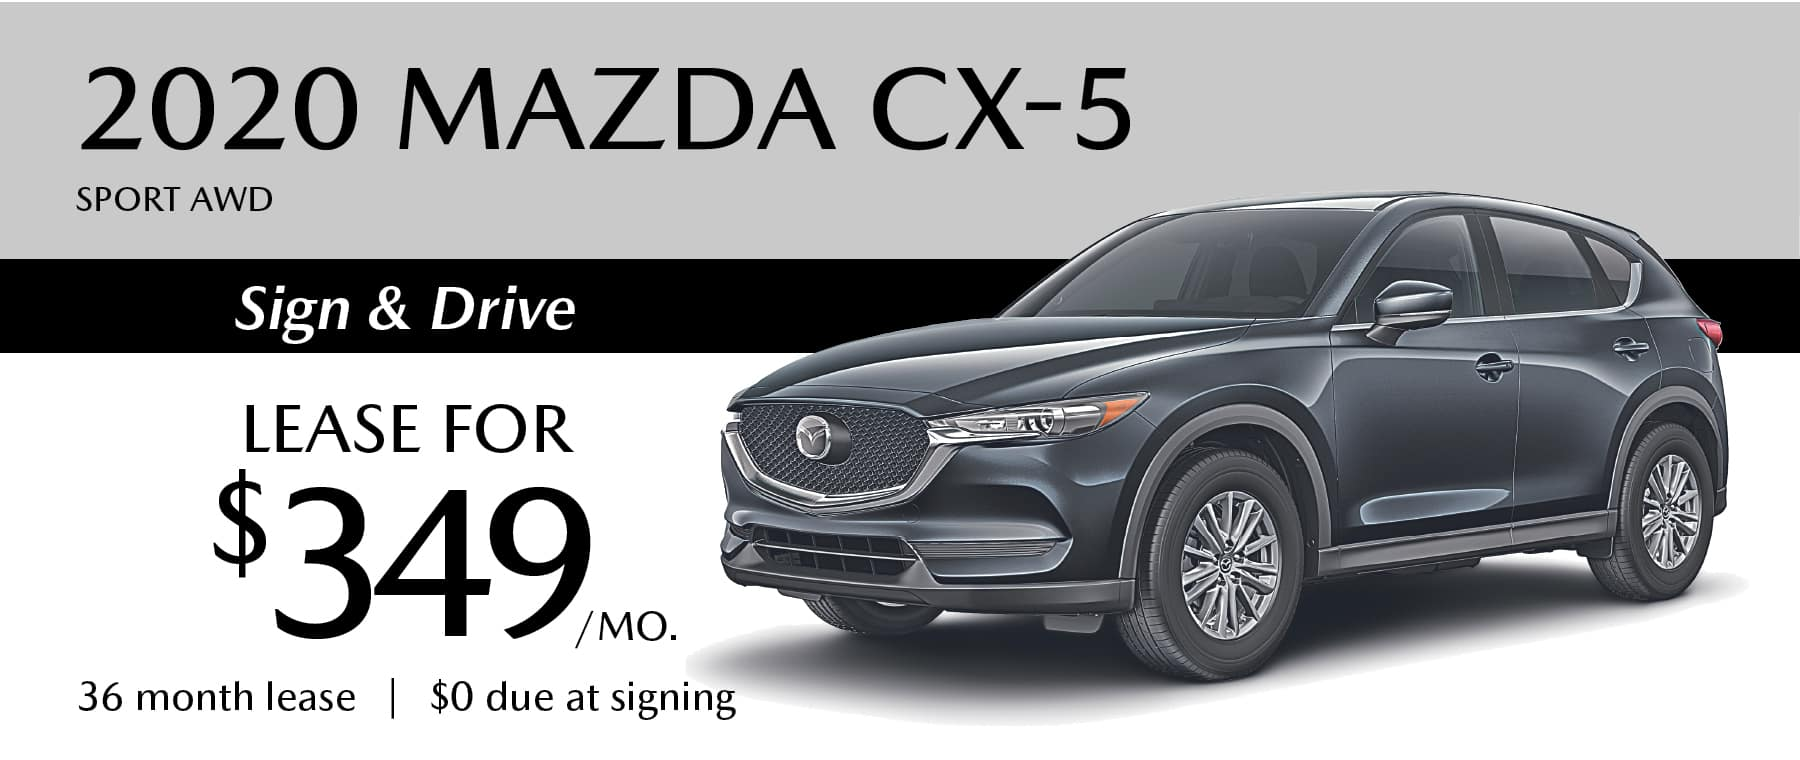 2020 MAZDA CX-5 Sport AWD Lease Offer in Greensburg PA with $0 Due at signing